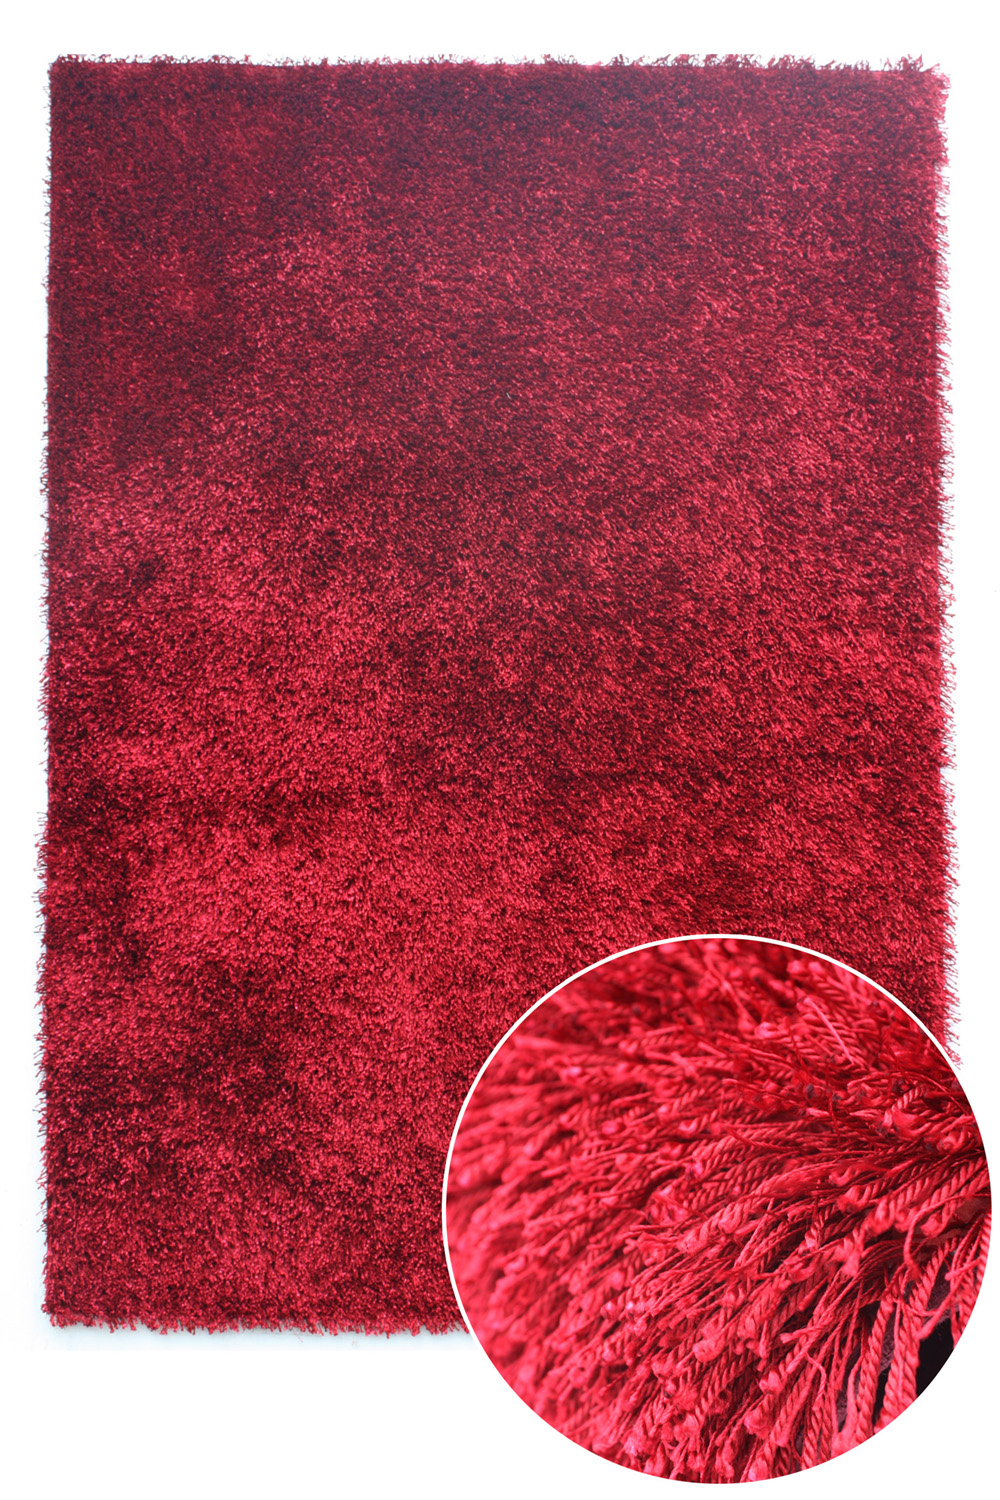 Polyester Carpet for Home